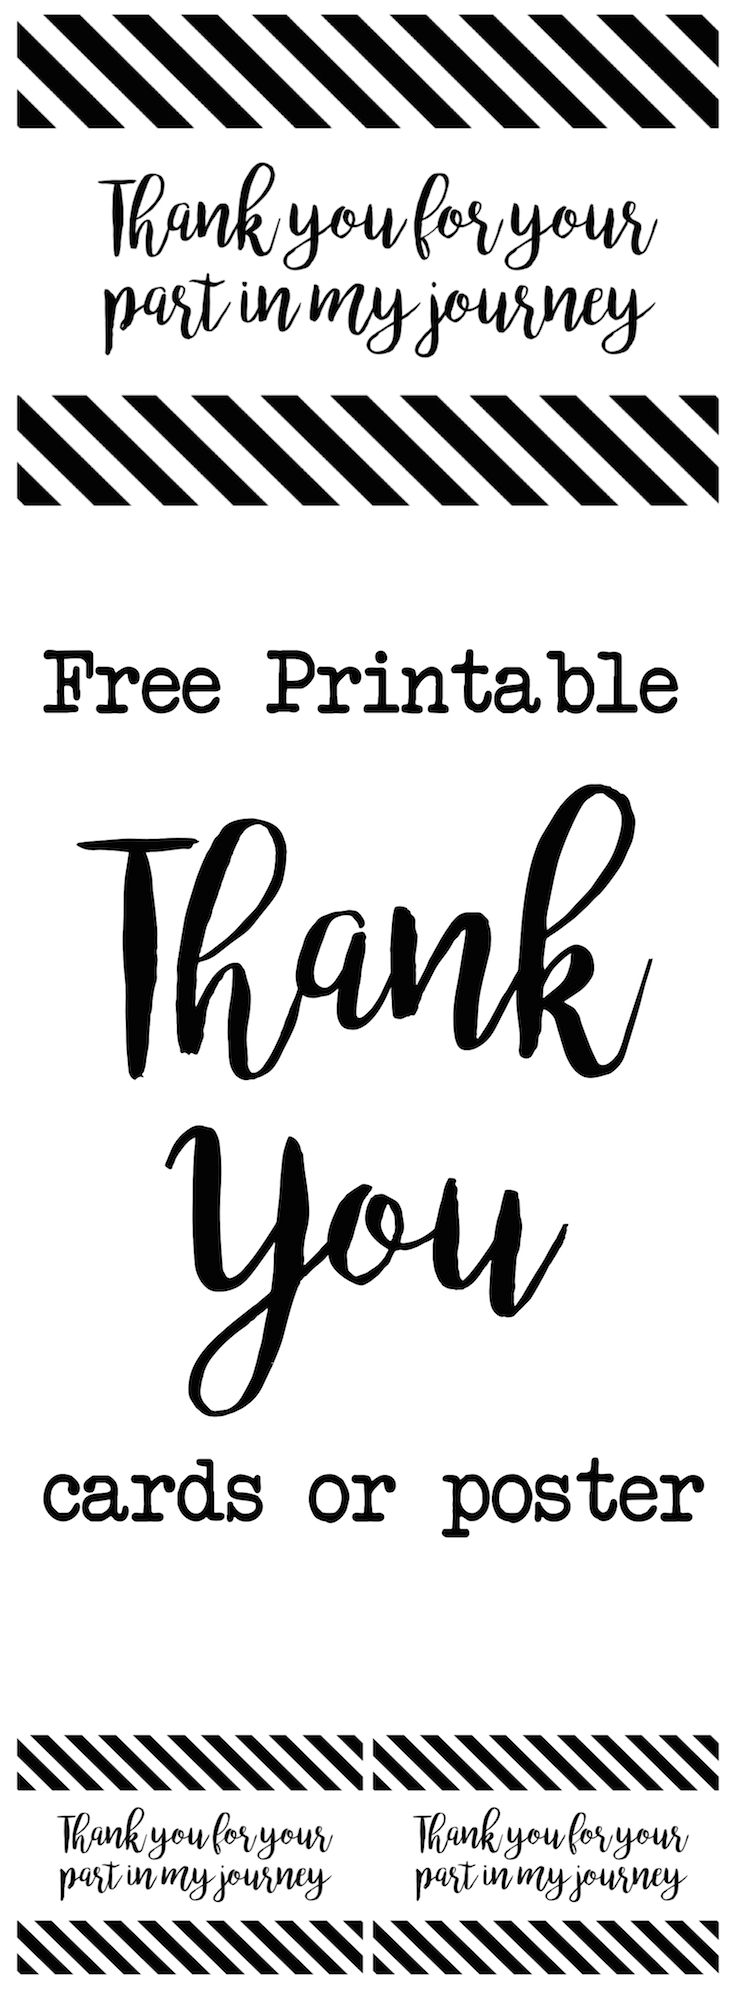 Thank You Cards Or Poster Thank You For Your Part In My Journey Paper Trail Design Graduation Thank You Cards Printable Thank You Cards Thank You Cards